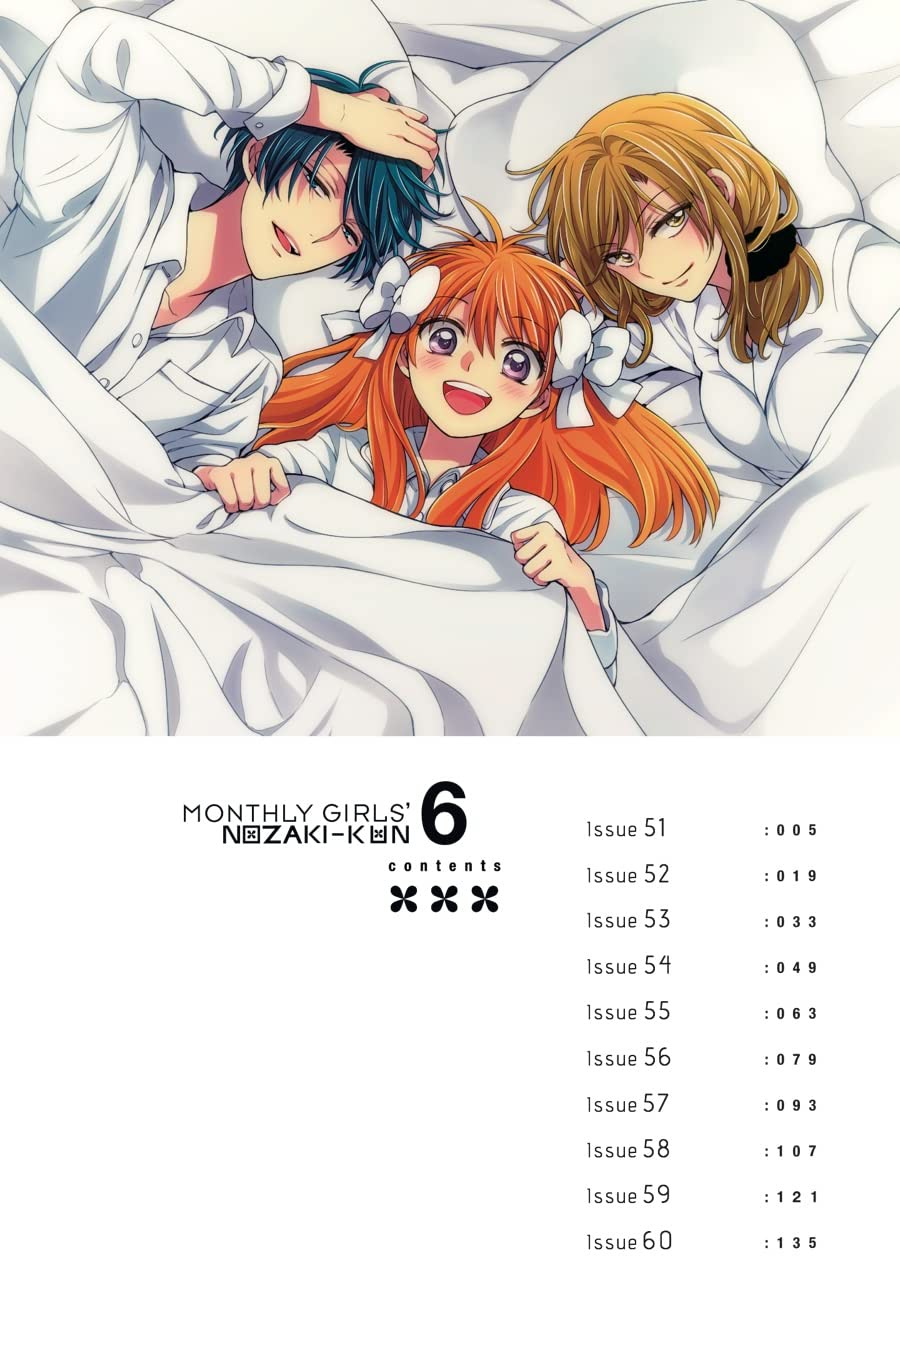 Monthly Girls' Nozaki-kun Vol. 6